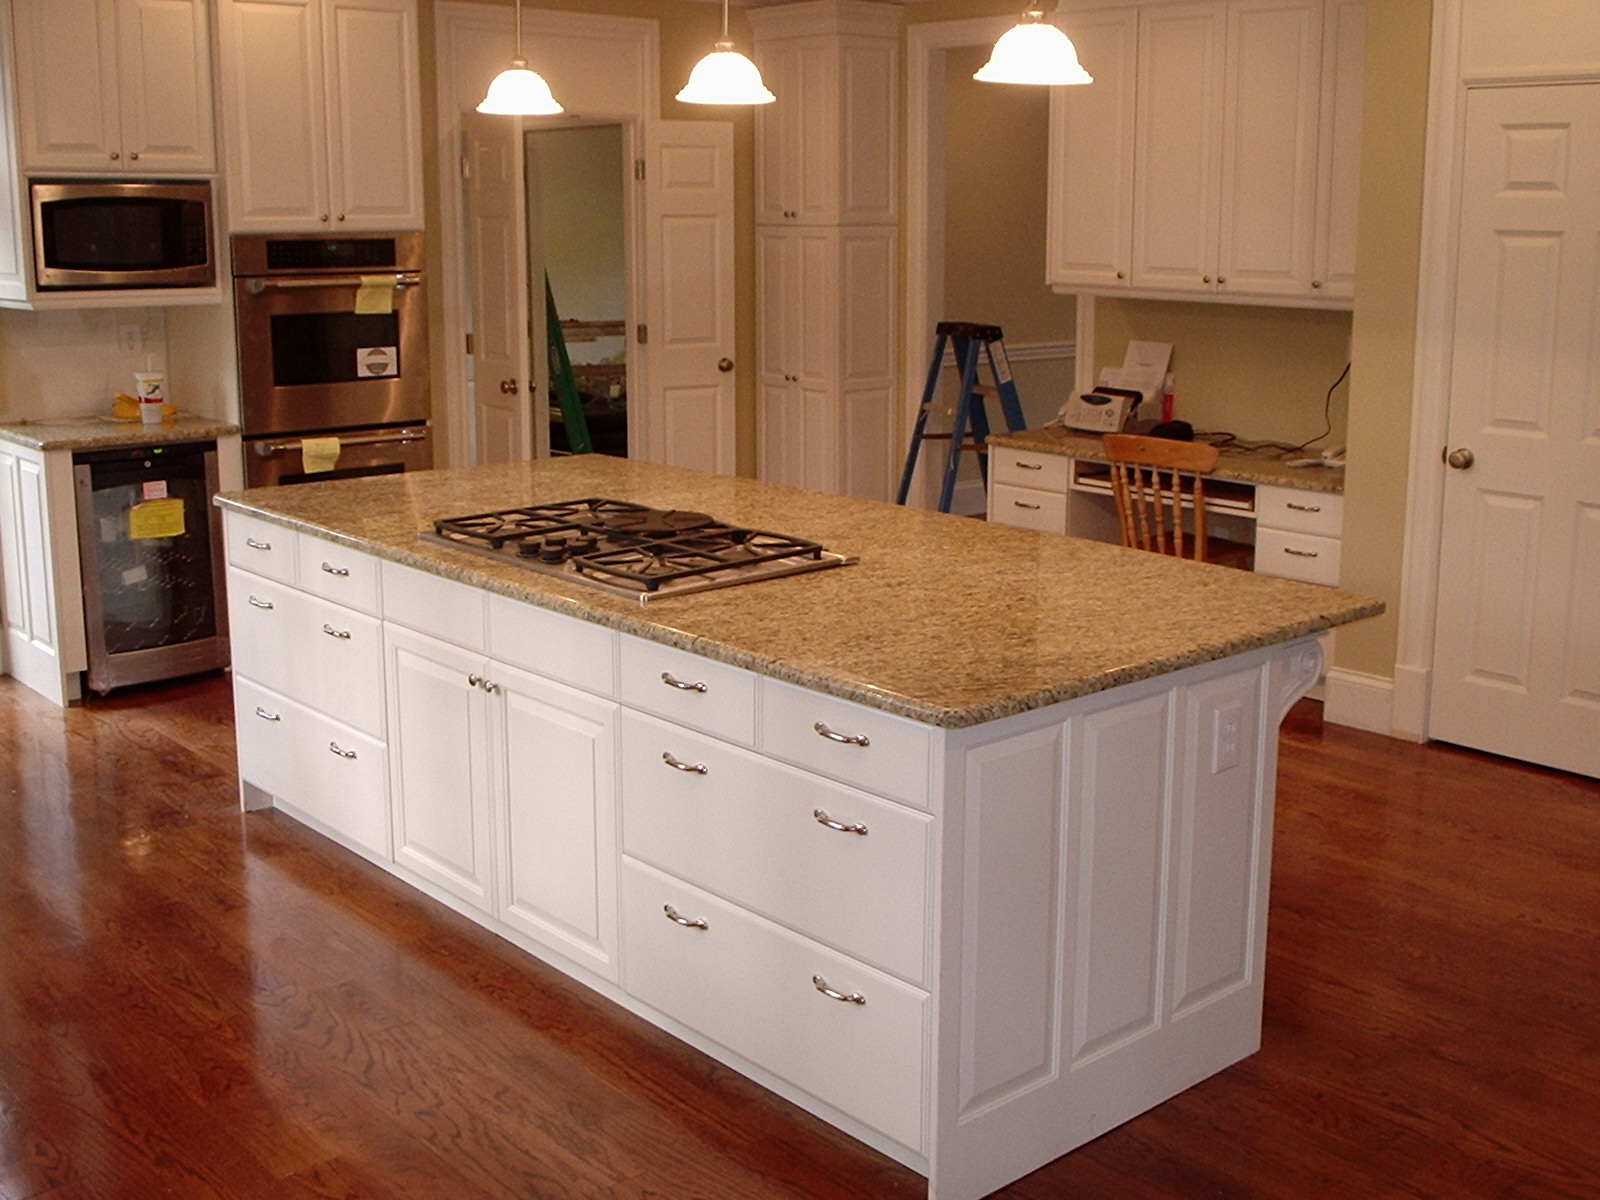 Kitchen cabinet plans dream house experience for Building kitchen cabinets